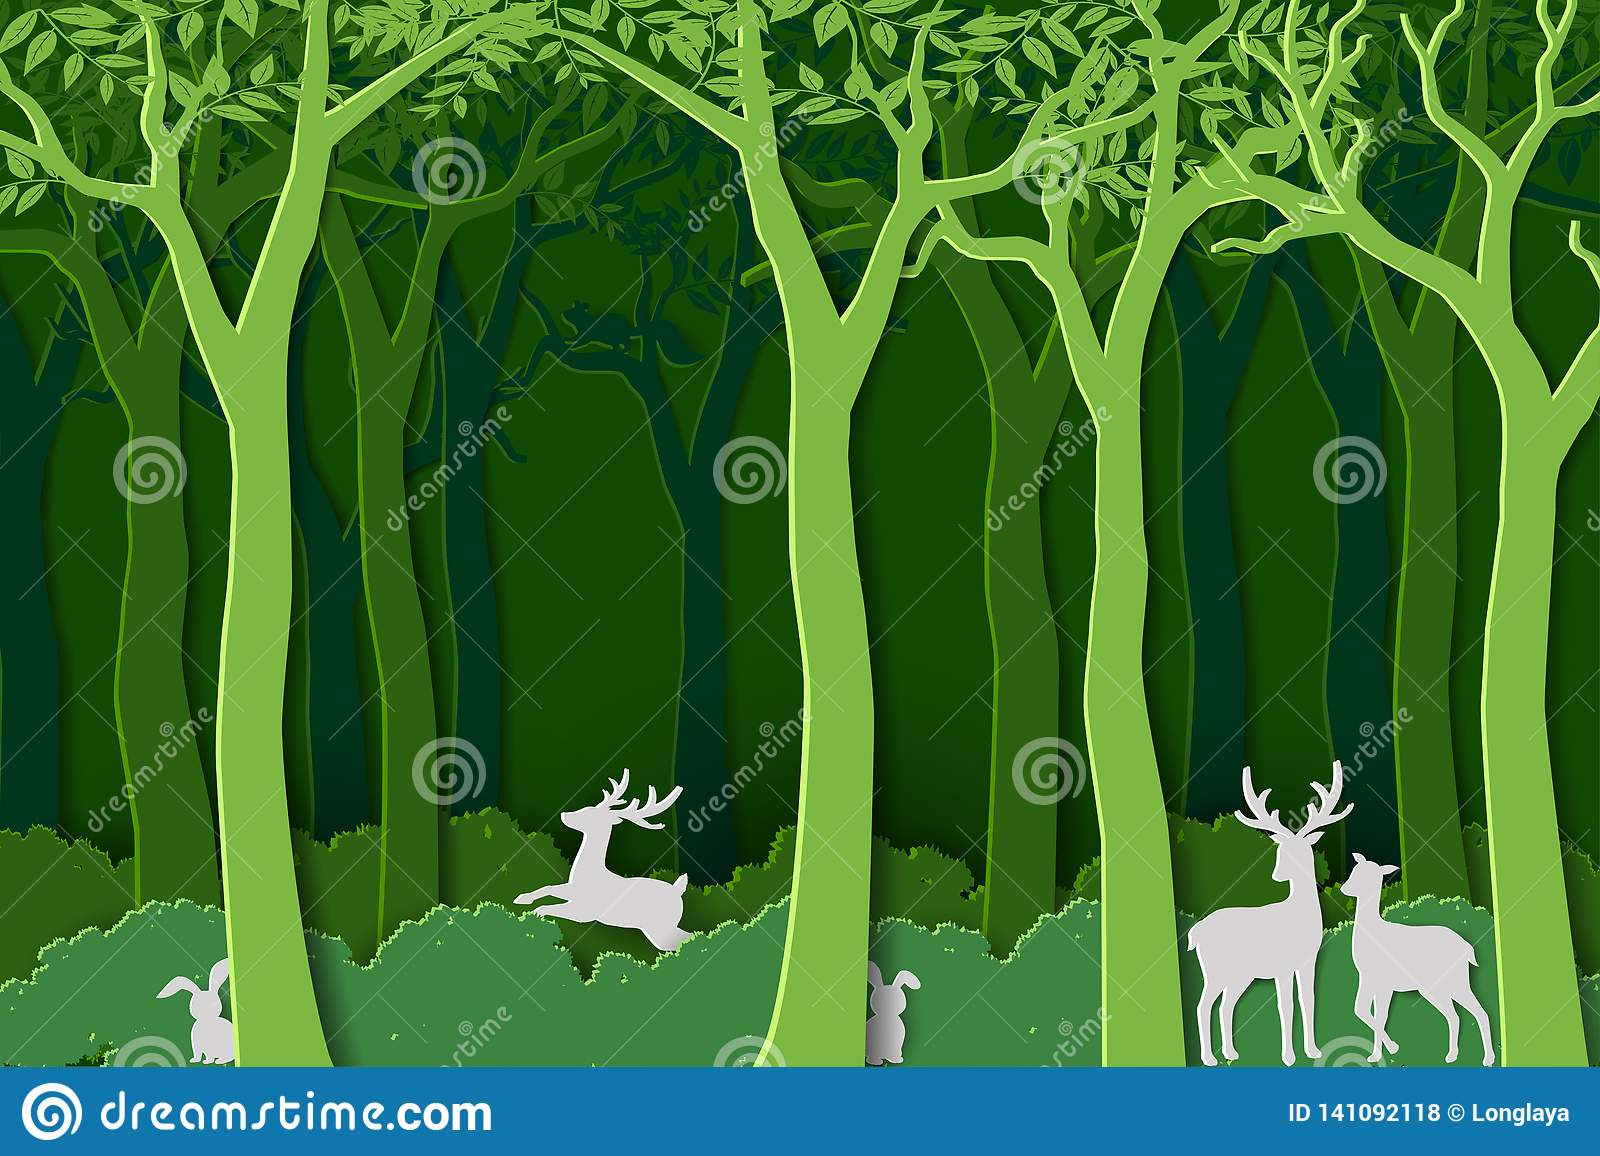 Love nature with animal wildlife in green woods,paper art design for World forest day,banner or poster